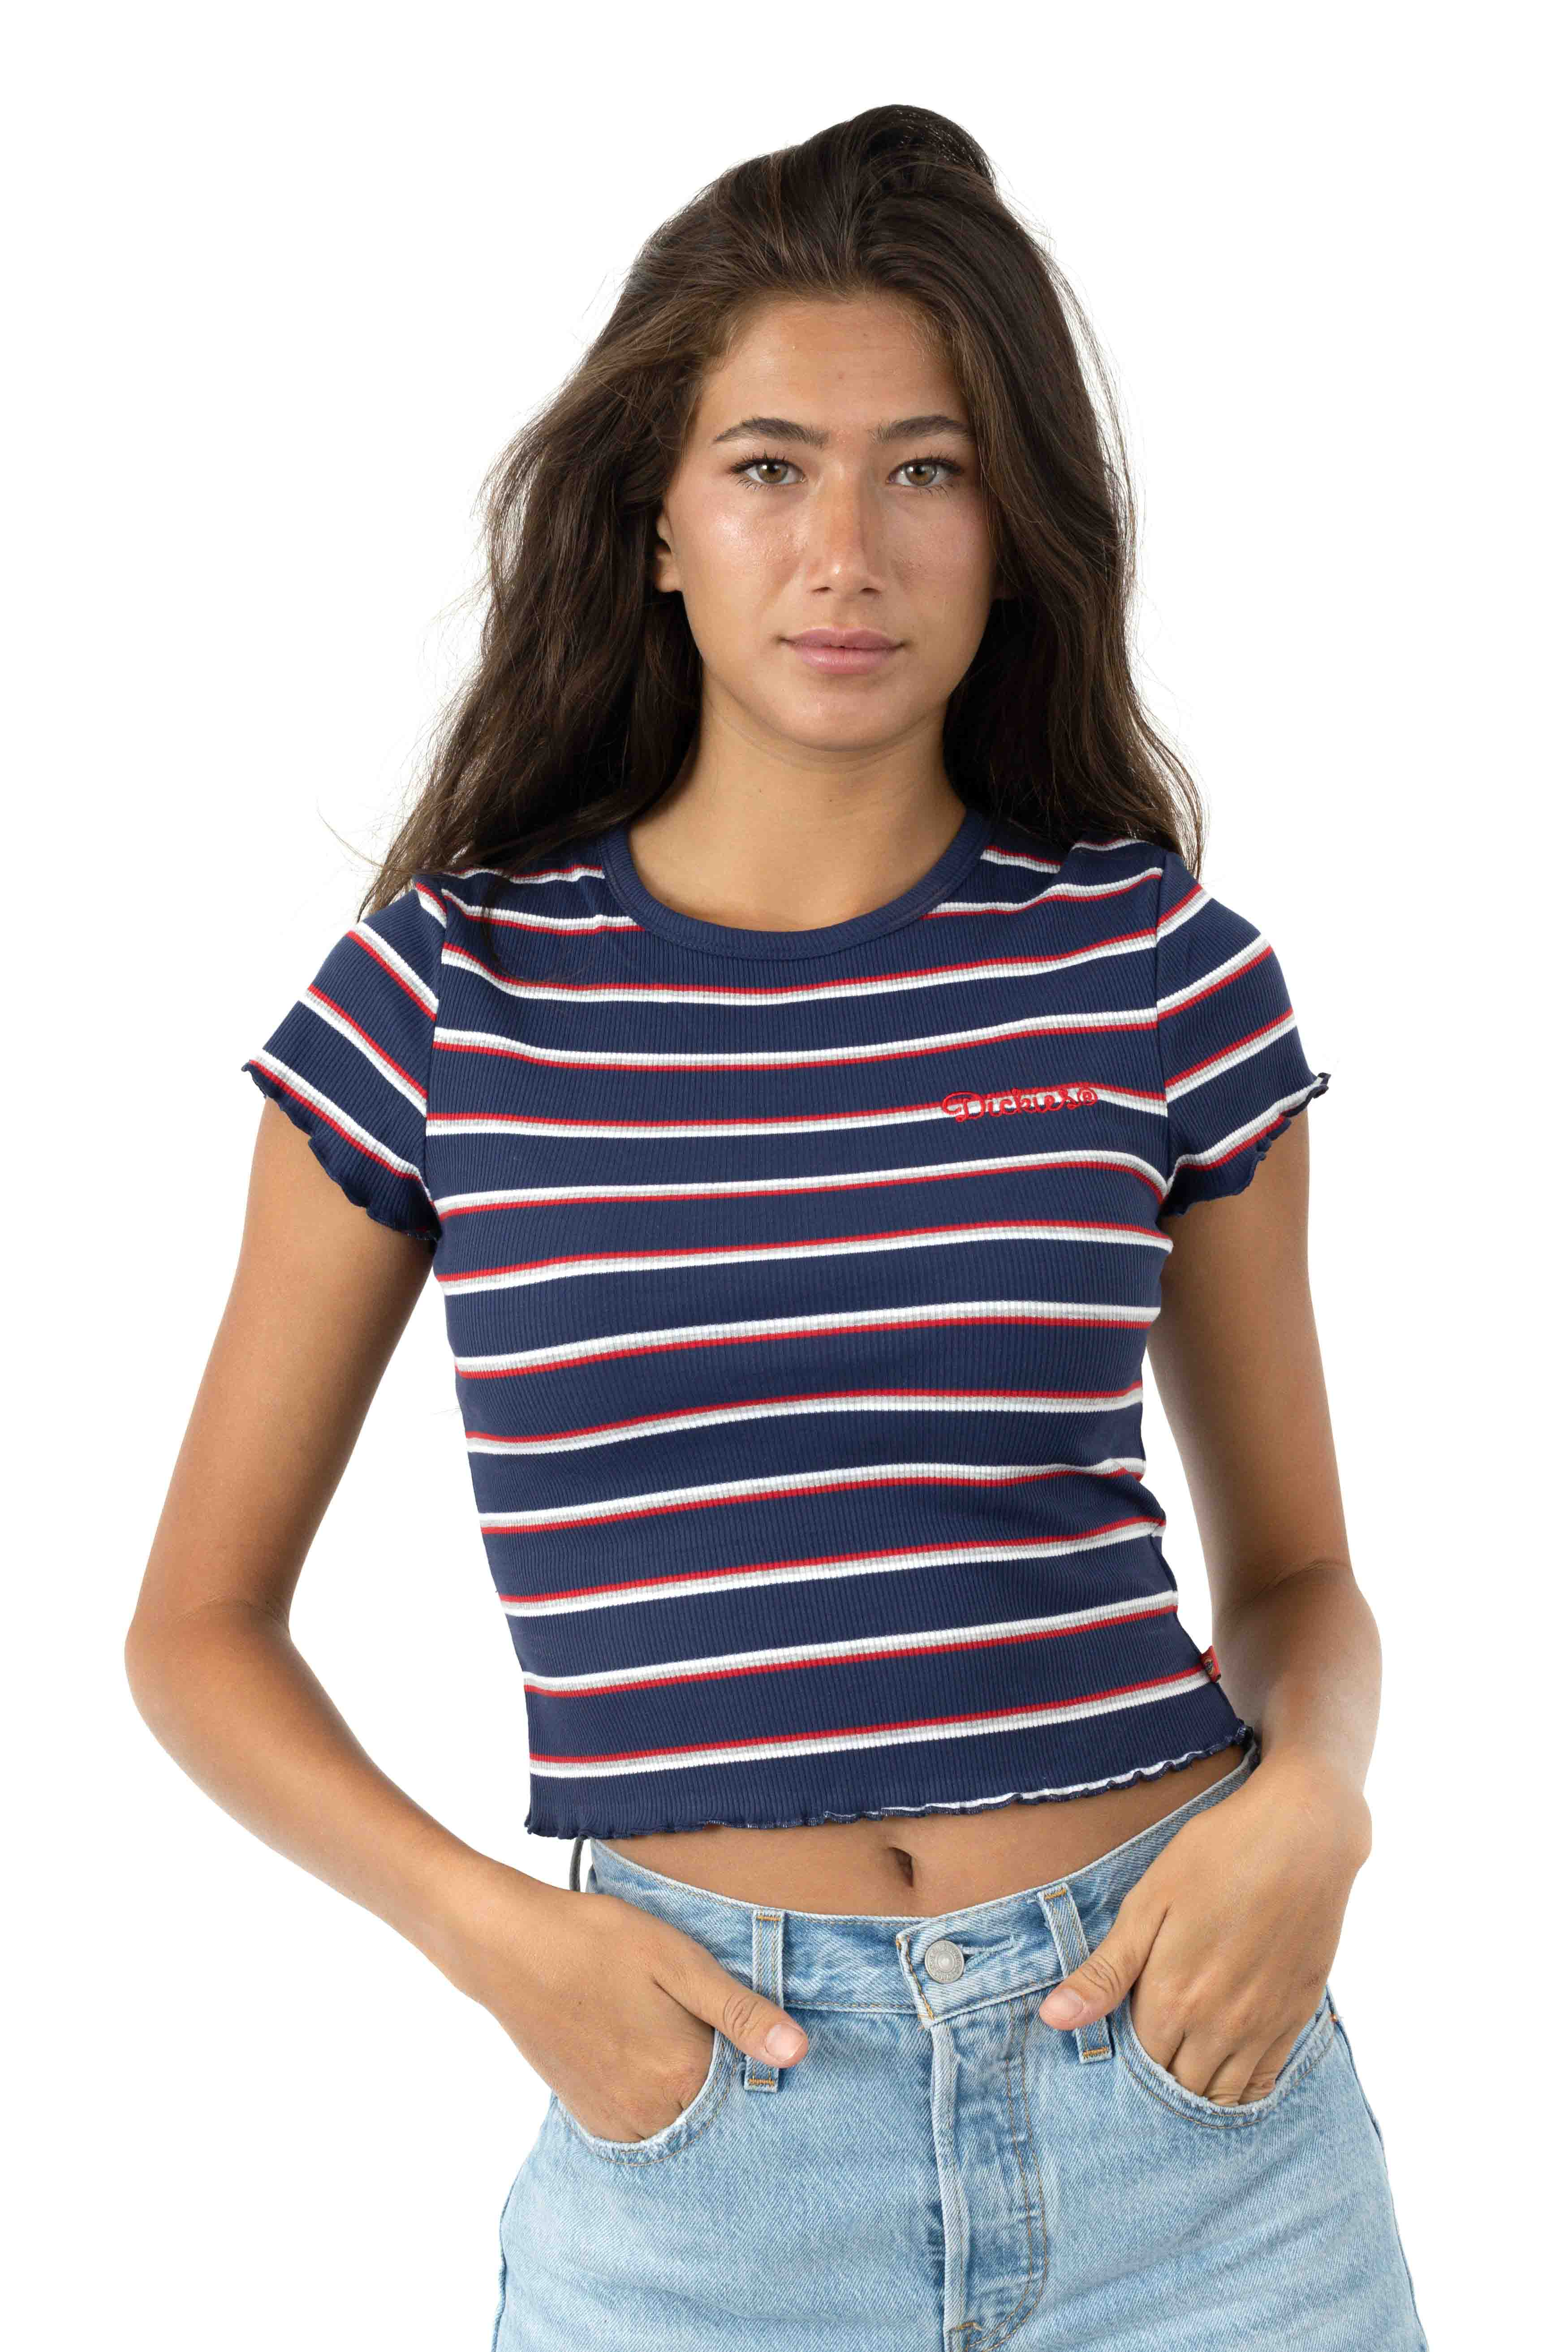 Scripty Dickies T-Shirt - Navy/White/Red